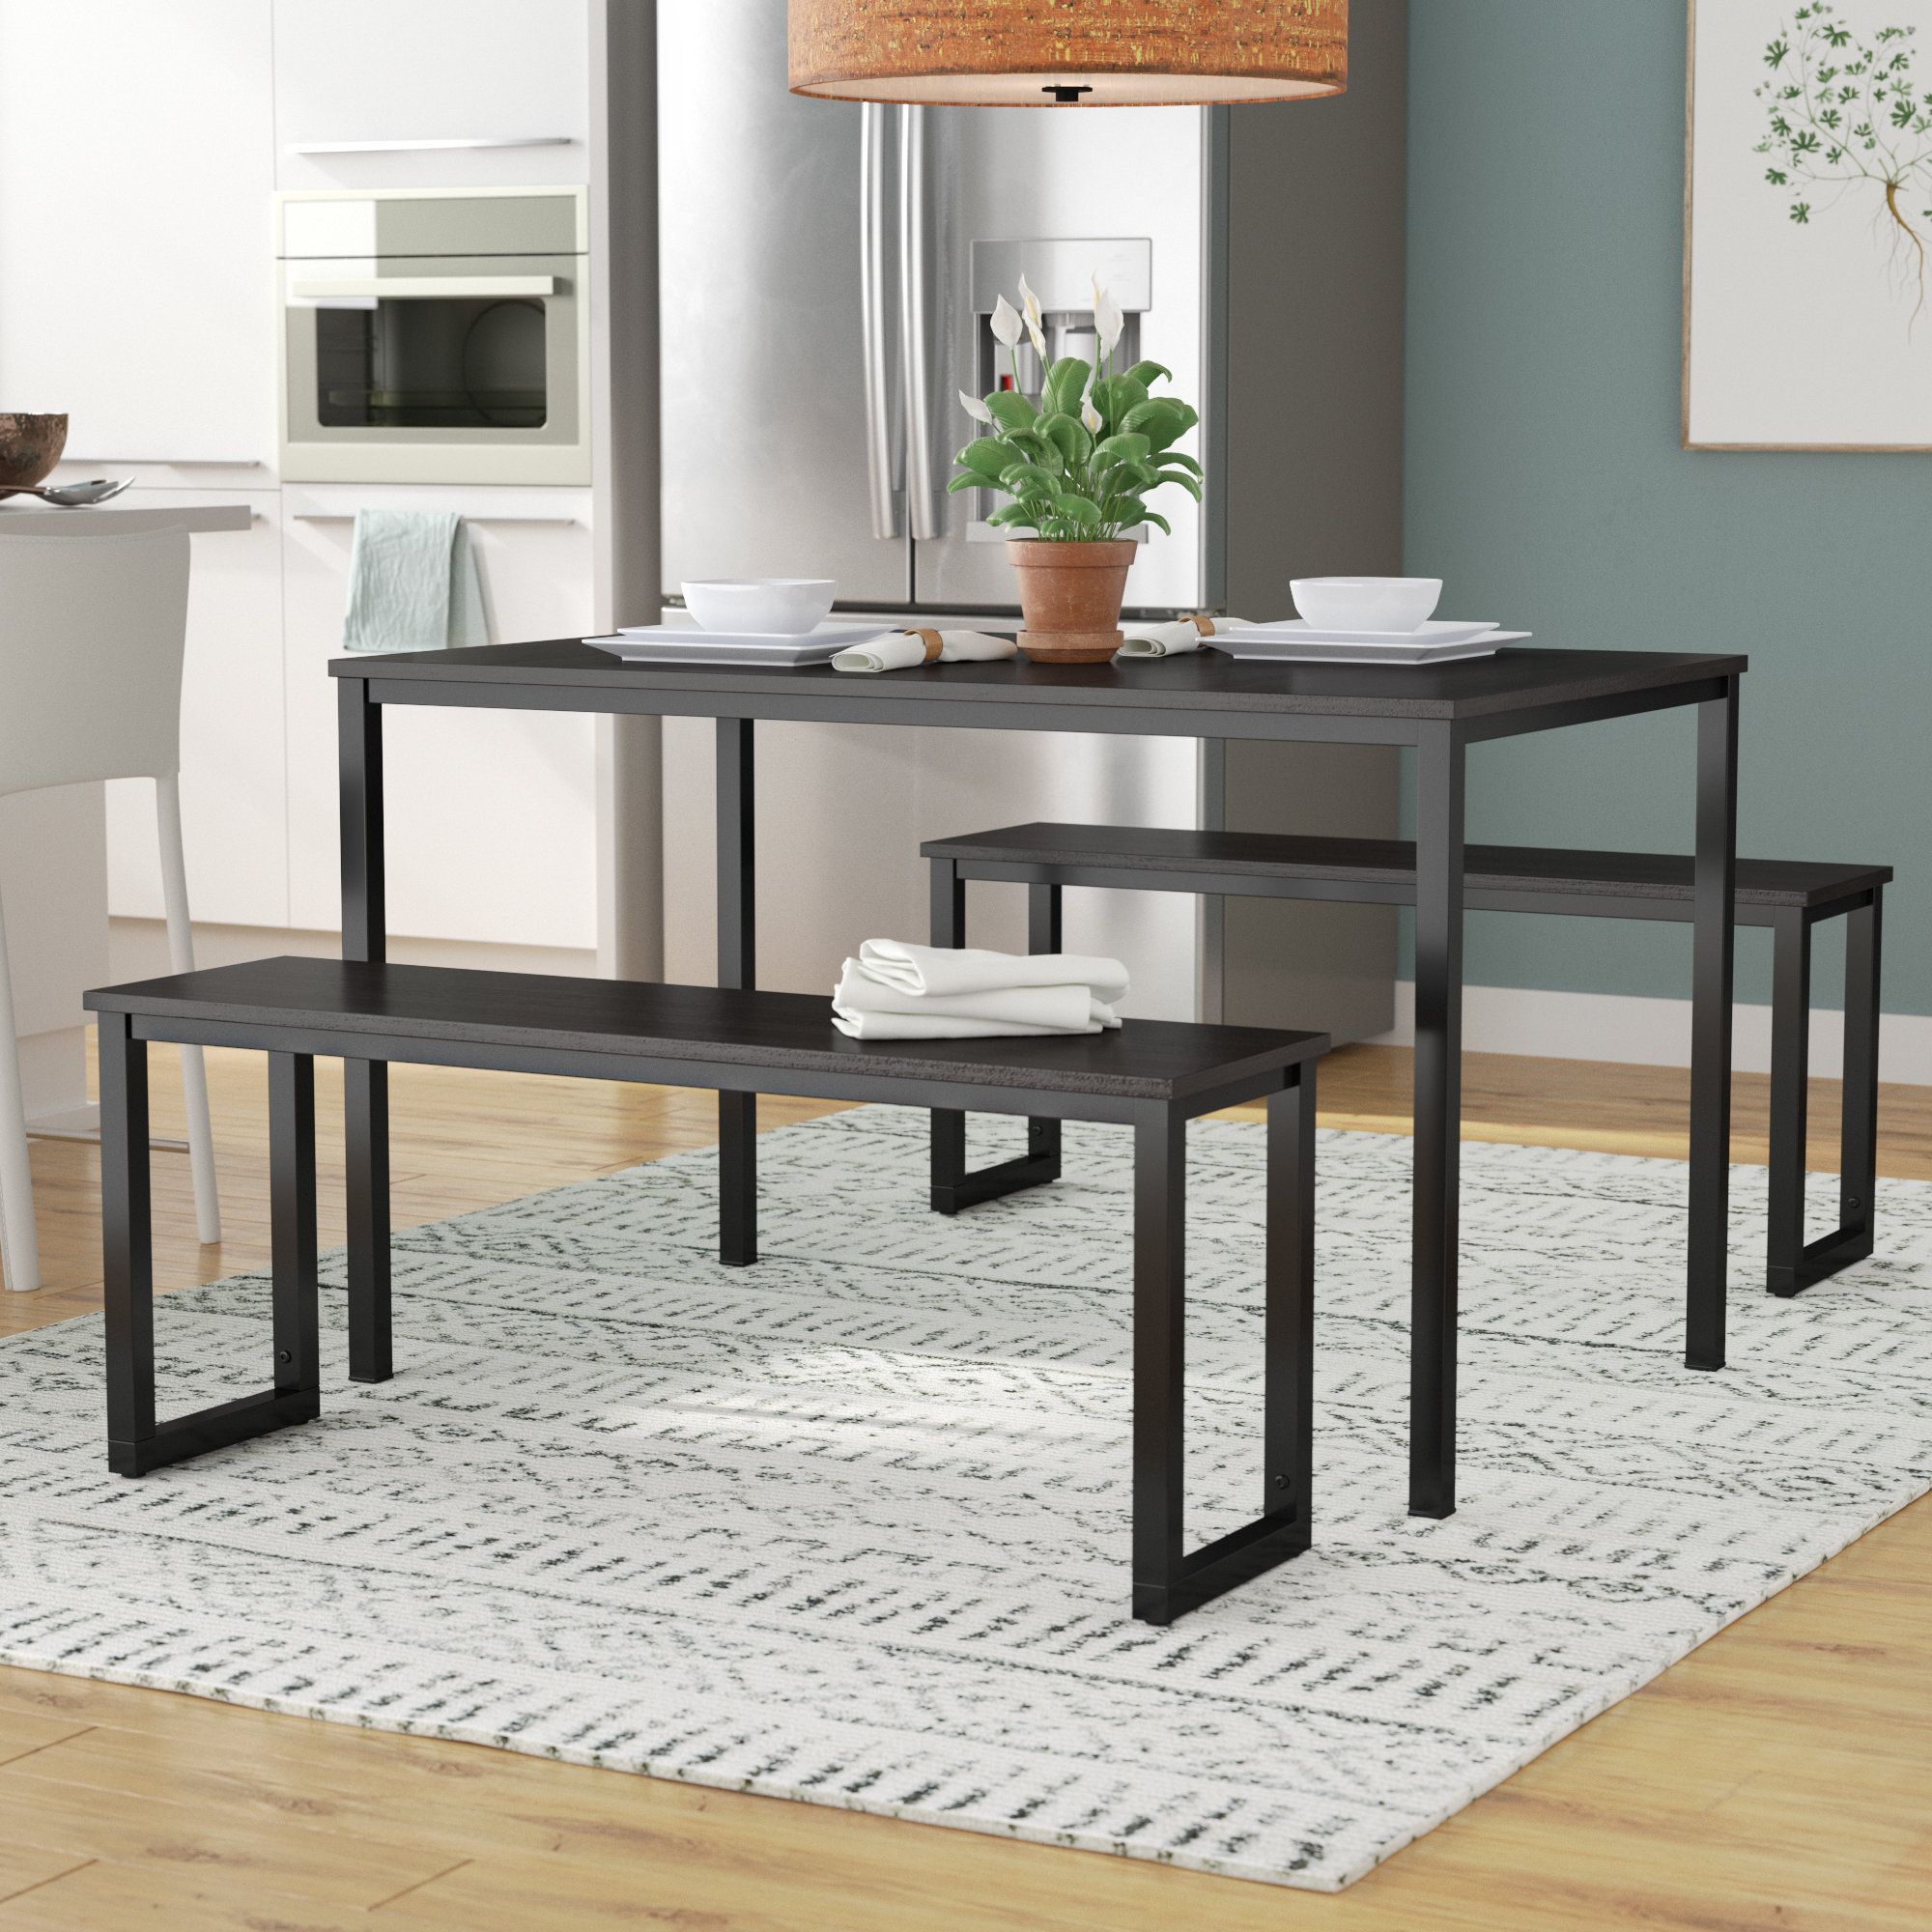 Rossiter 3 Piece Dining Sets Throughout Most Current Frida 3 Piece Dining Table Set (View 12 of 20)